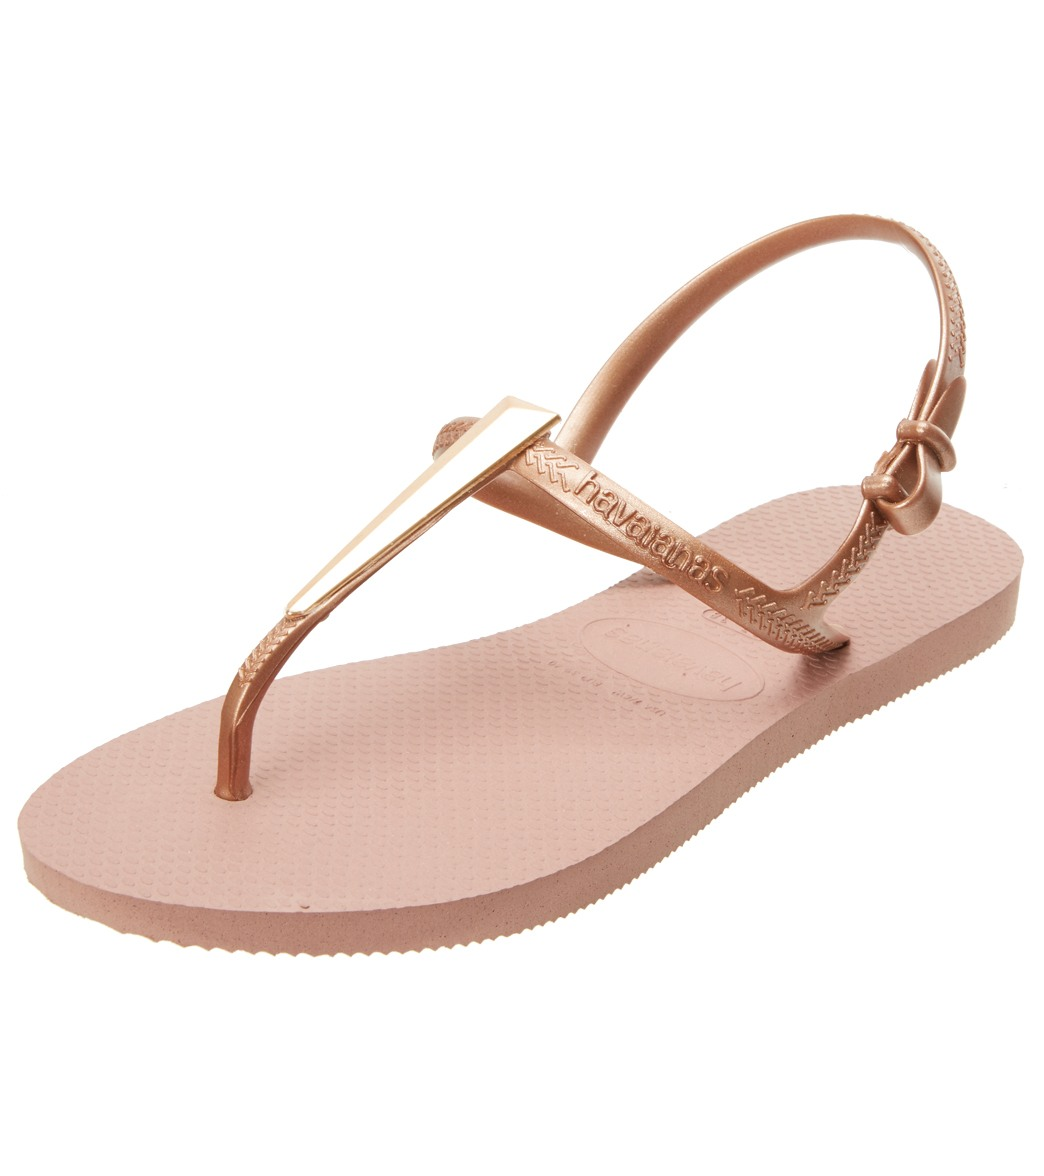 b0da468350a545 Havaianas Women s Freedom Slim Maxi Sandal at SwimOutlet.com